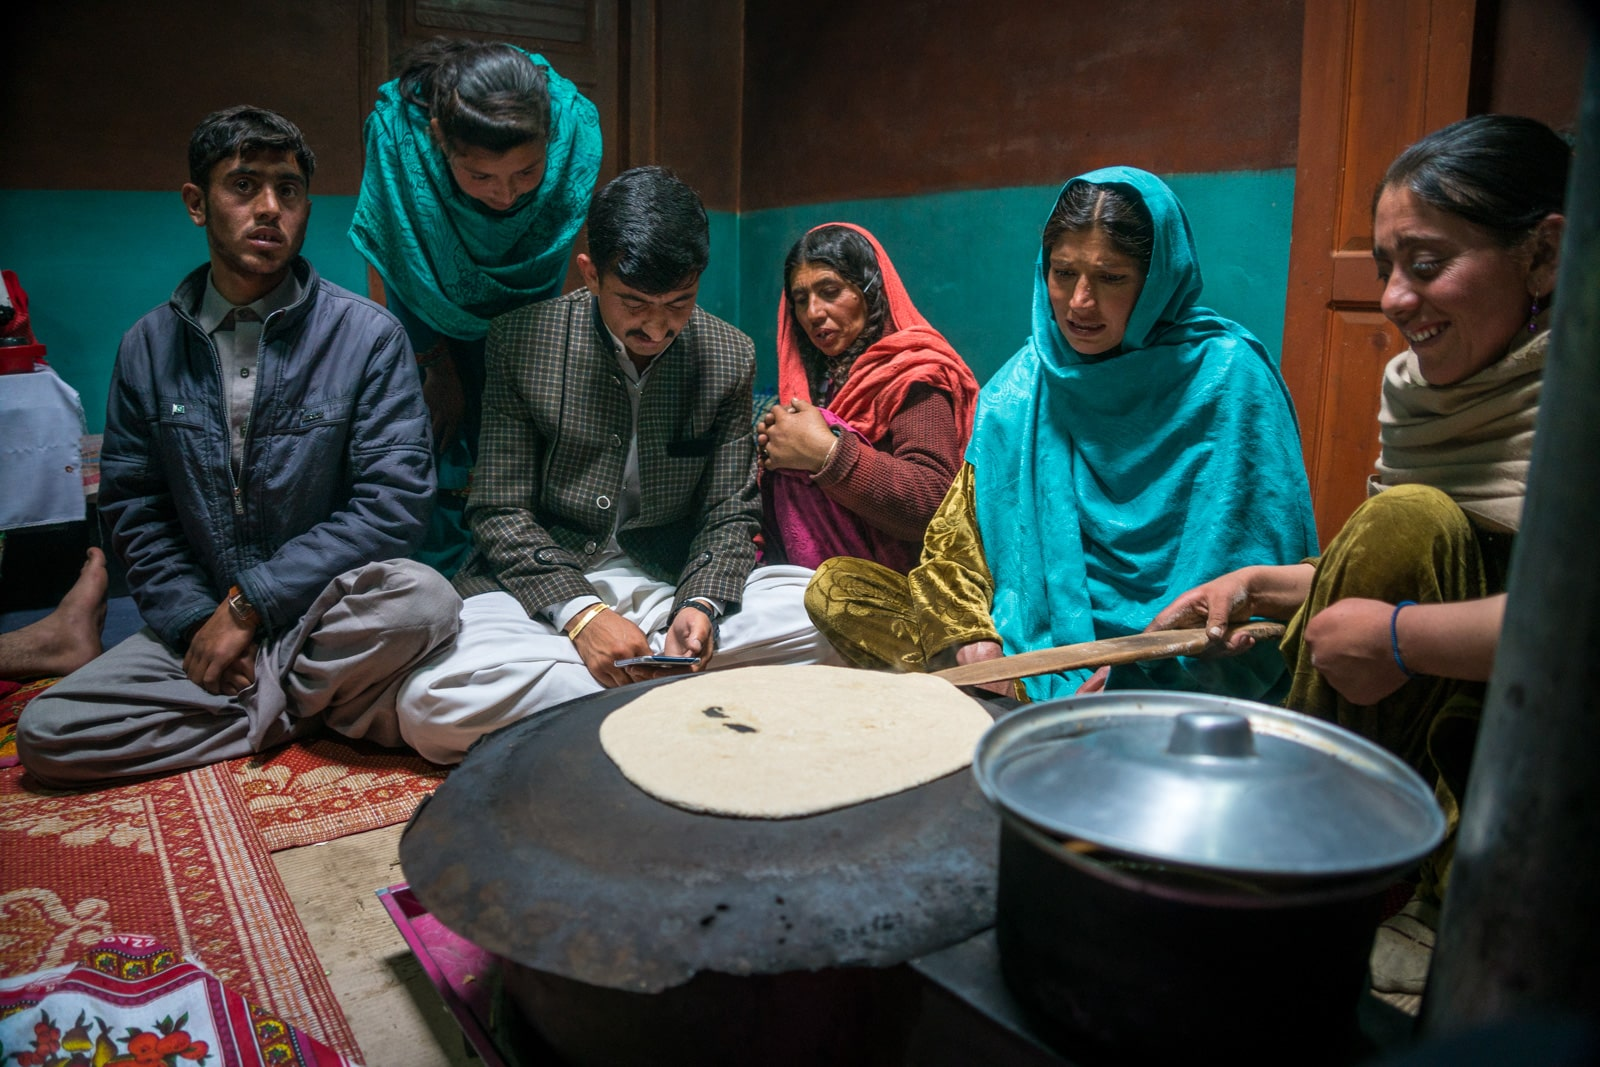 Phander Valley travel guide - Family in a traditional house with bread cooking on the stove - Lost With Purpose travel blog